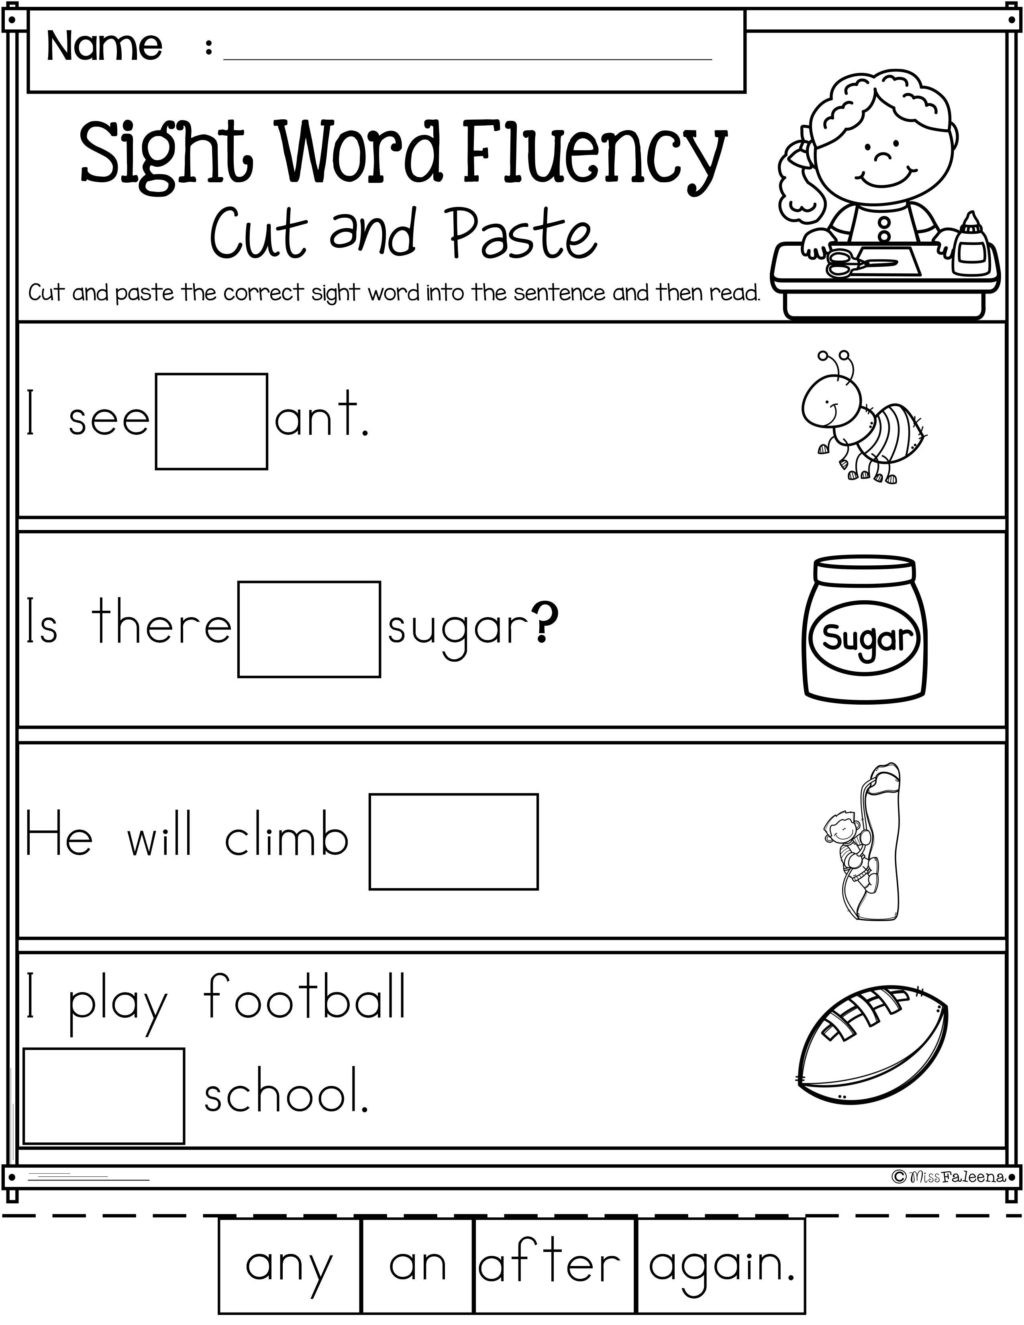 6th Grade Reading Worksheets Printable Worksheet Worksheet Printable Worksheets for Kids Free